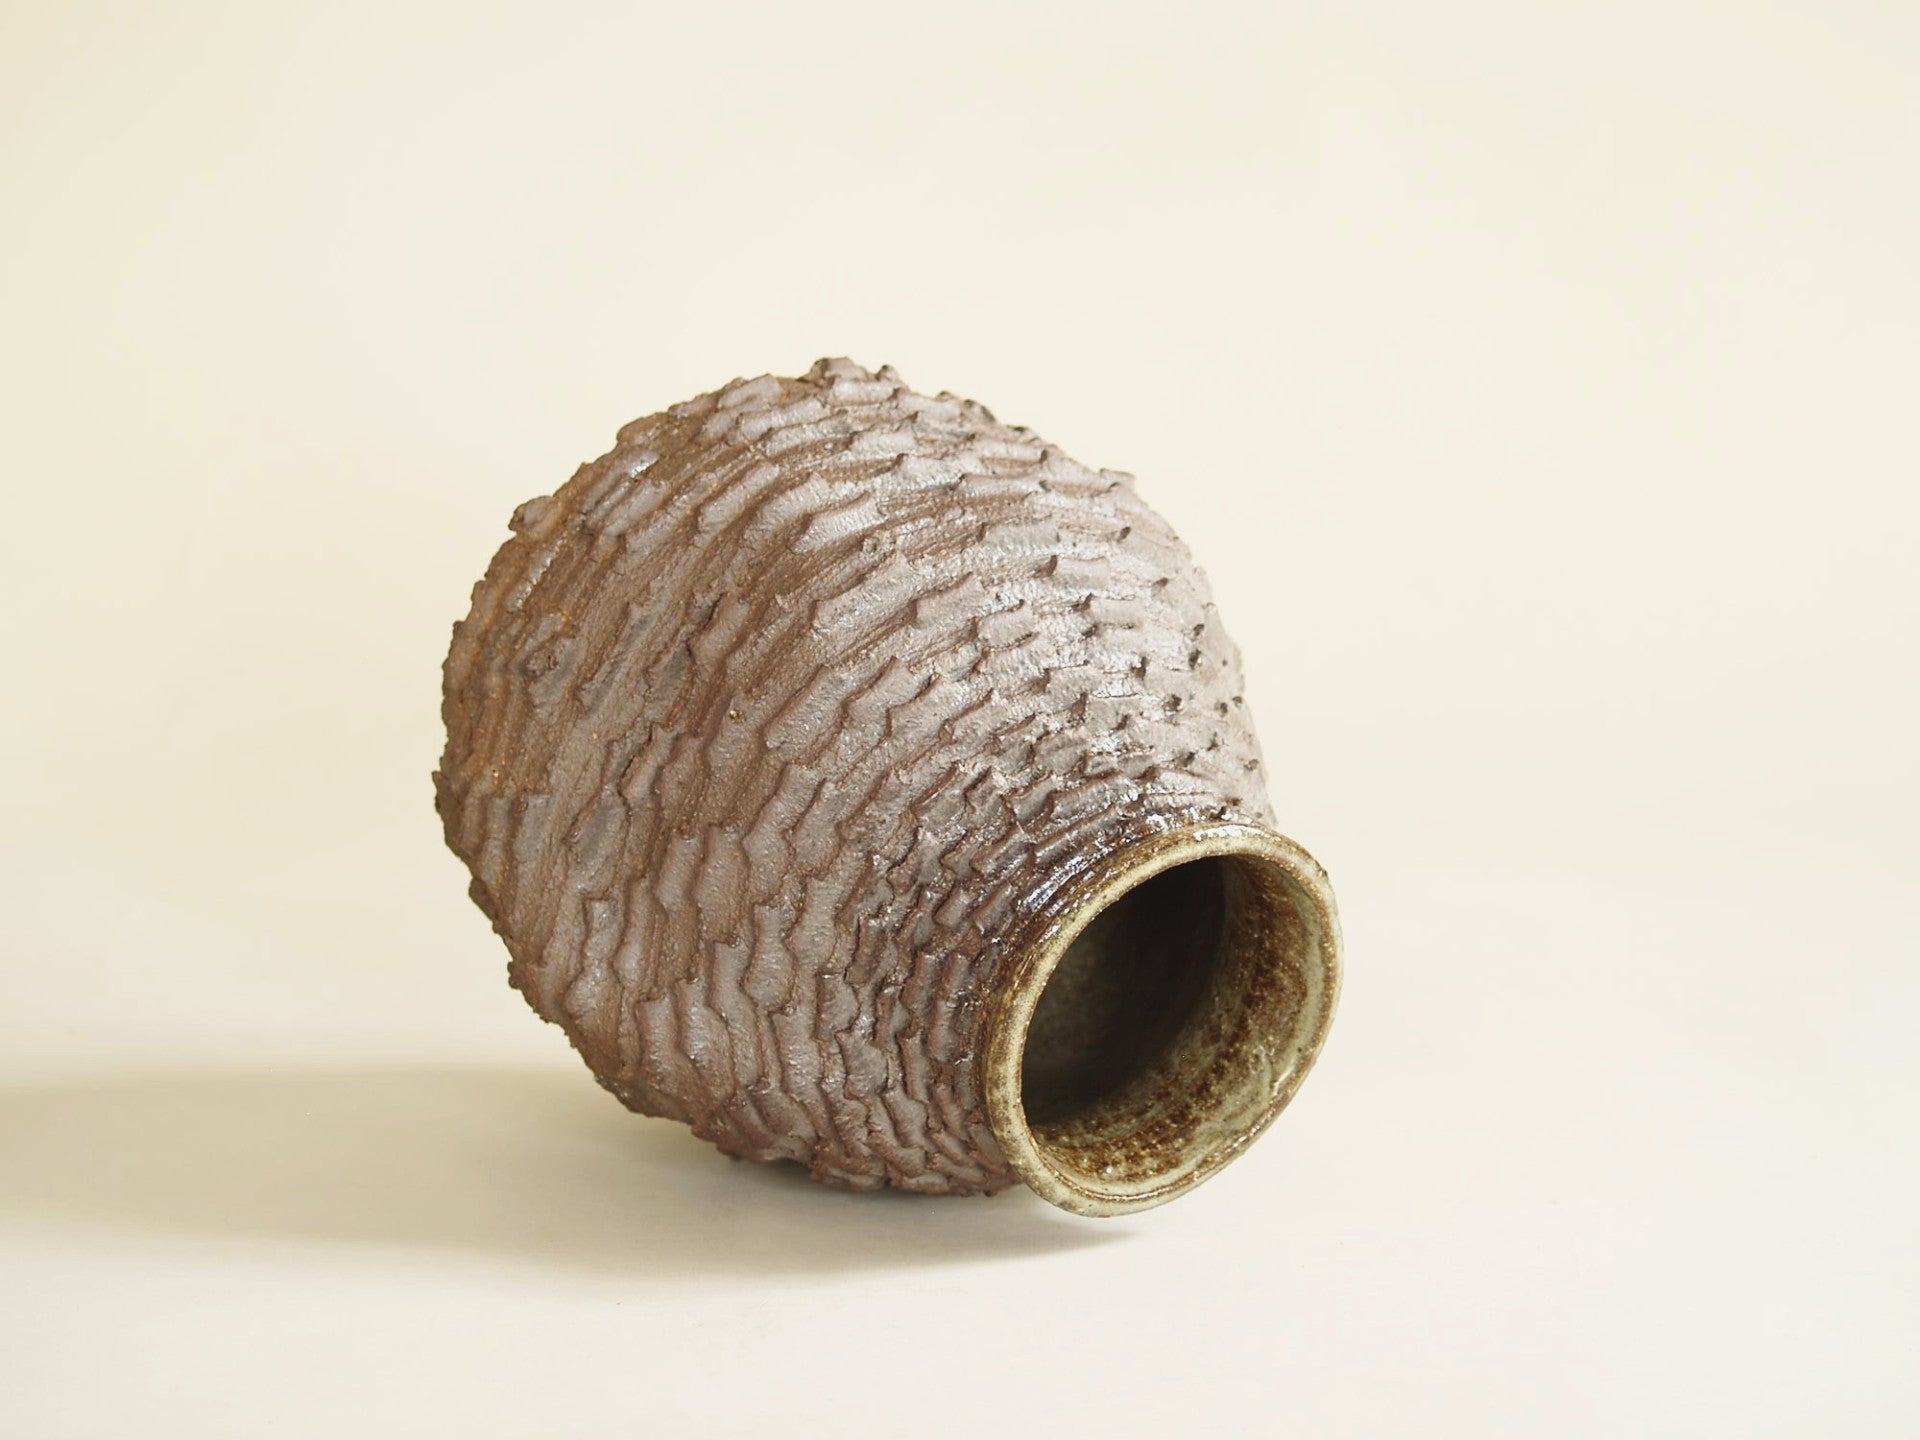 Vase sculptural de Shōzō Michikawa, Japon (vers 2005)..Freeform sculptural vase by Shōzō Michikawa, Japan (ca. 2005)